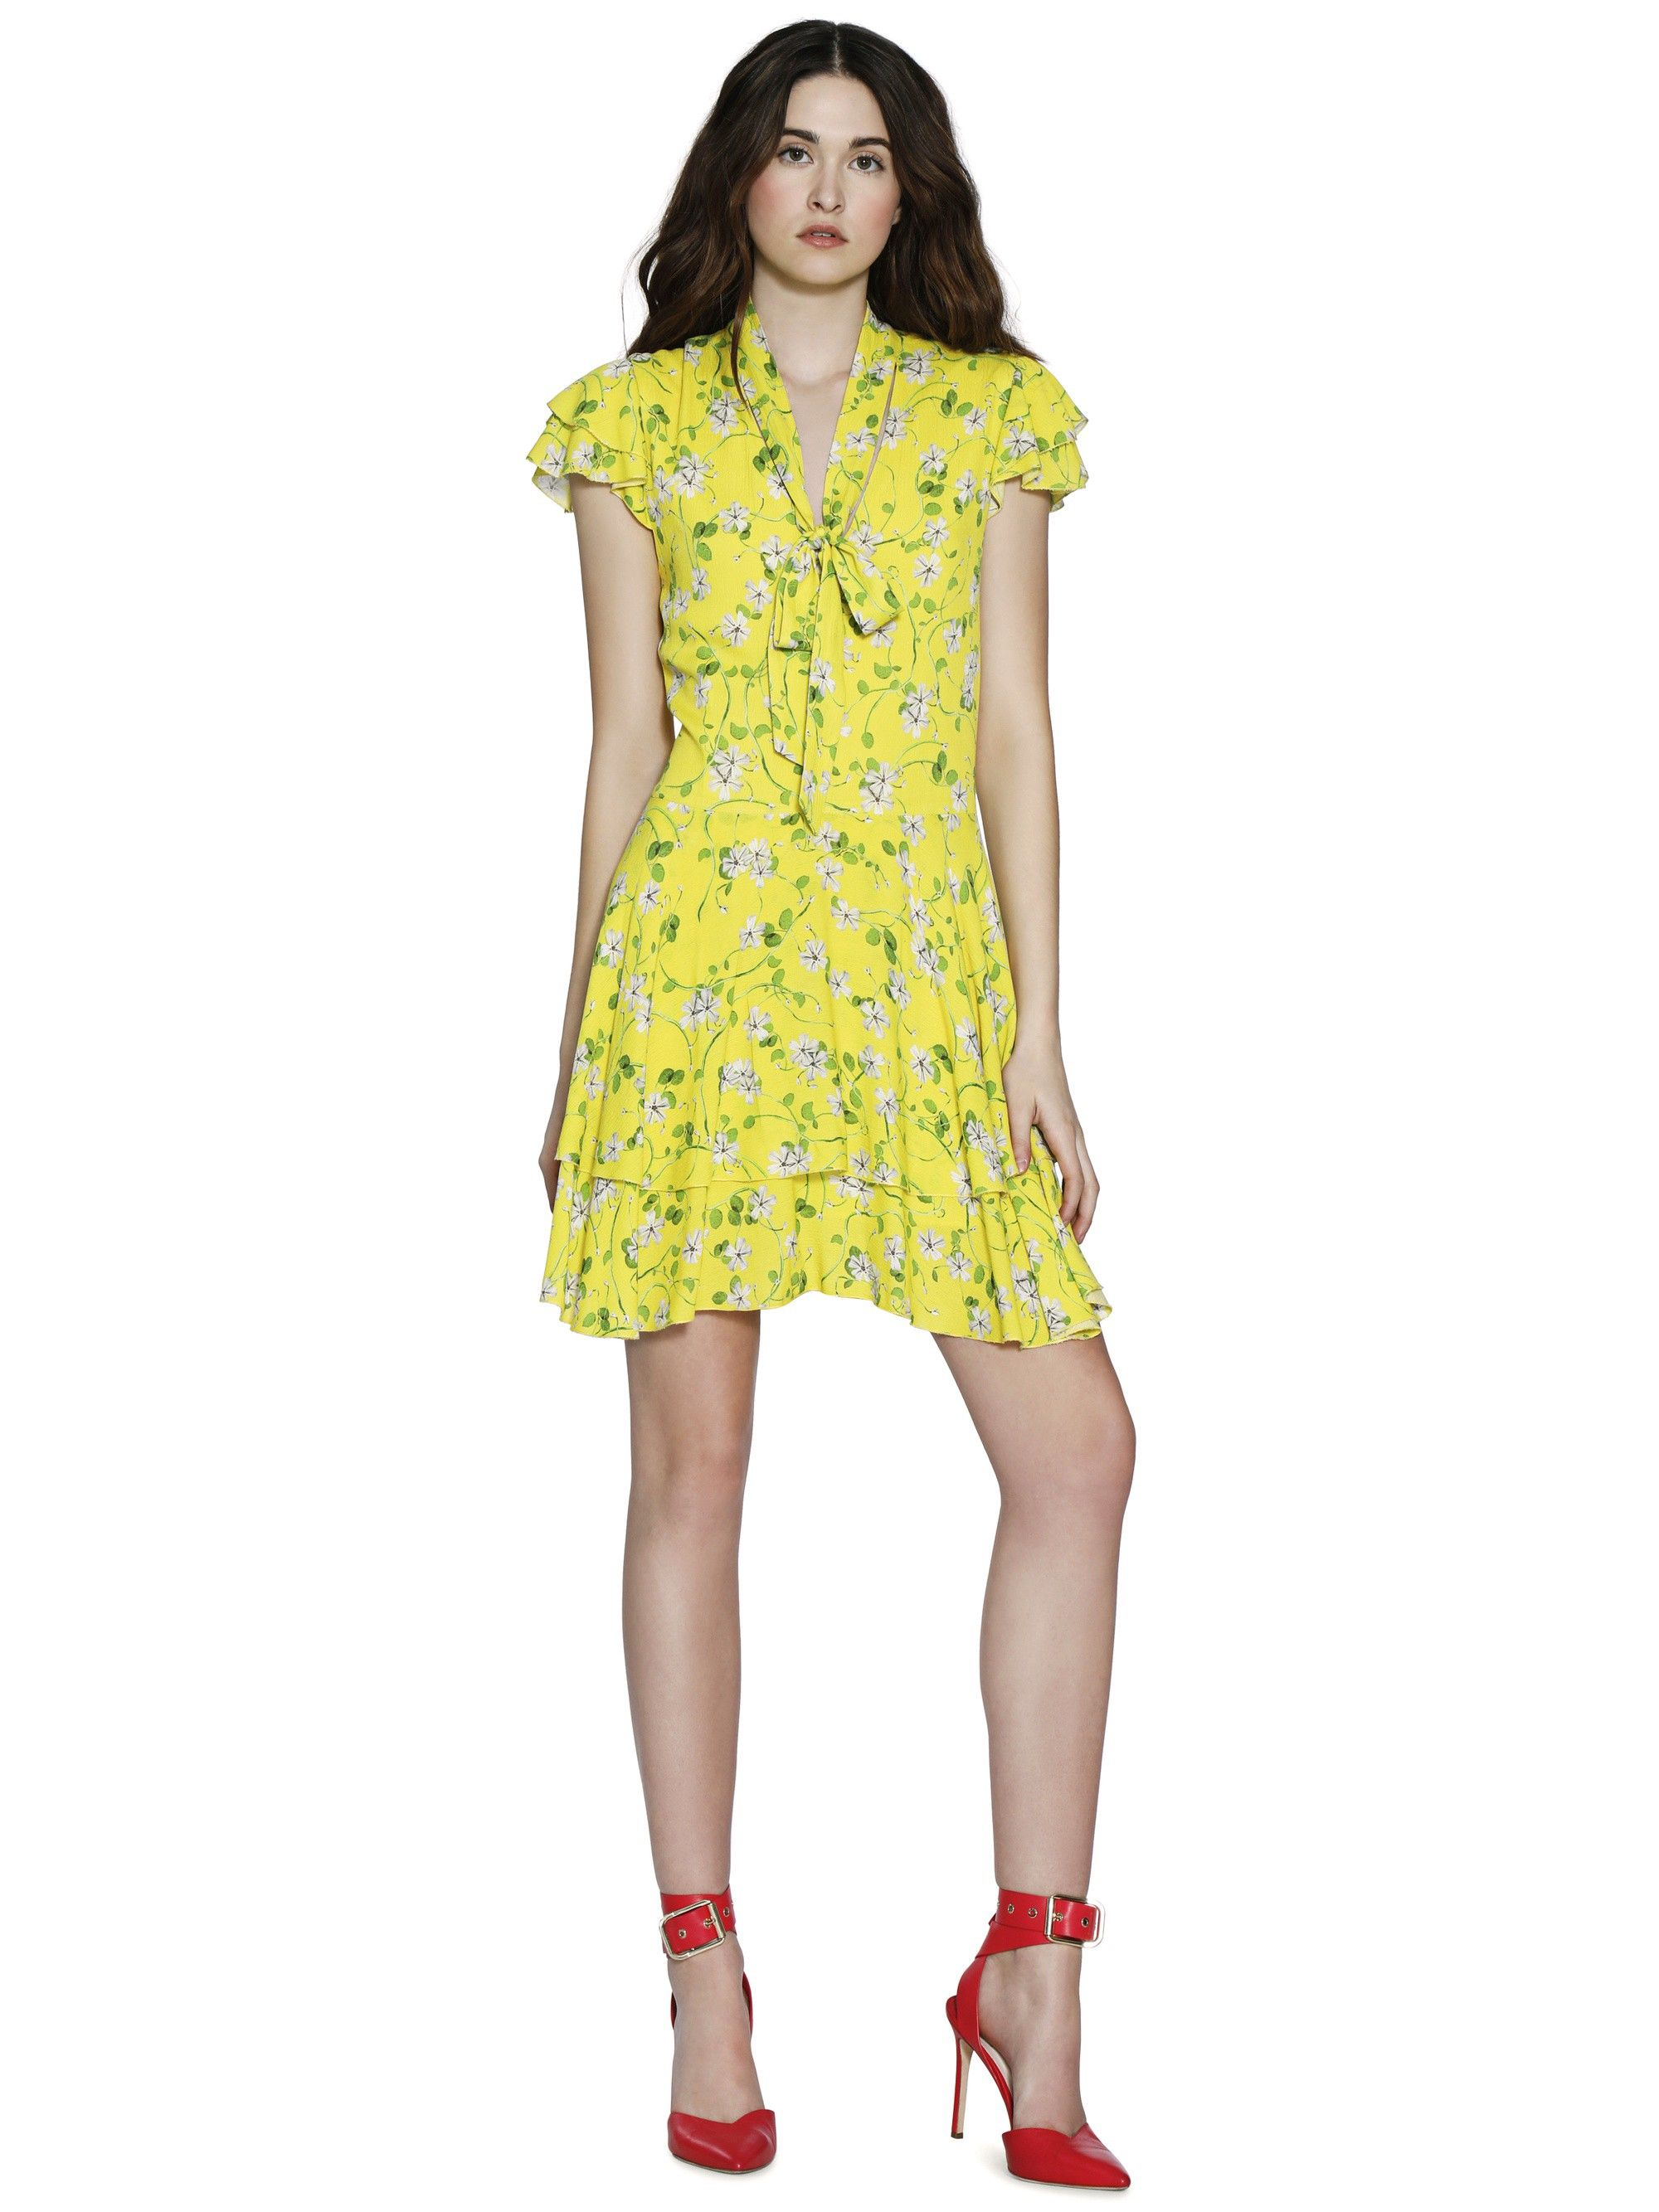 19215a647c7b Alice + Olivia Moore Flutter Sleeve Layered Tunic Dress - 12 ...